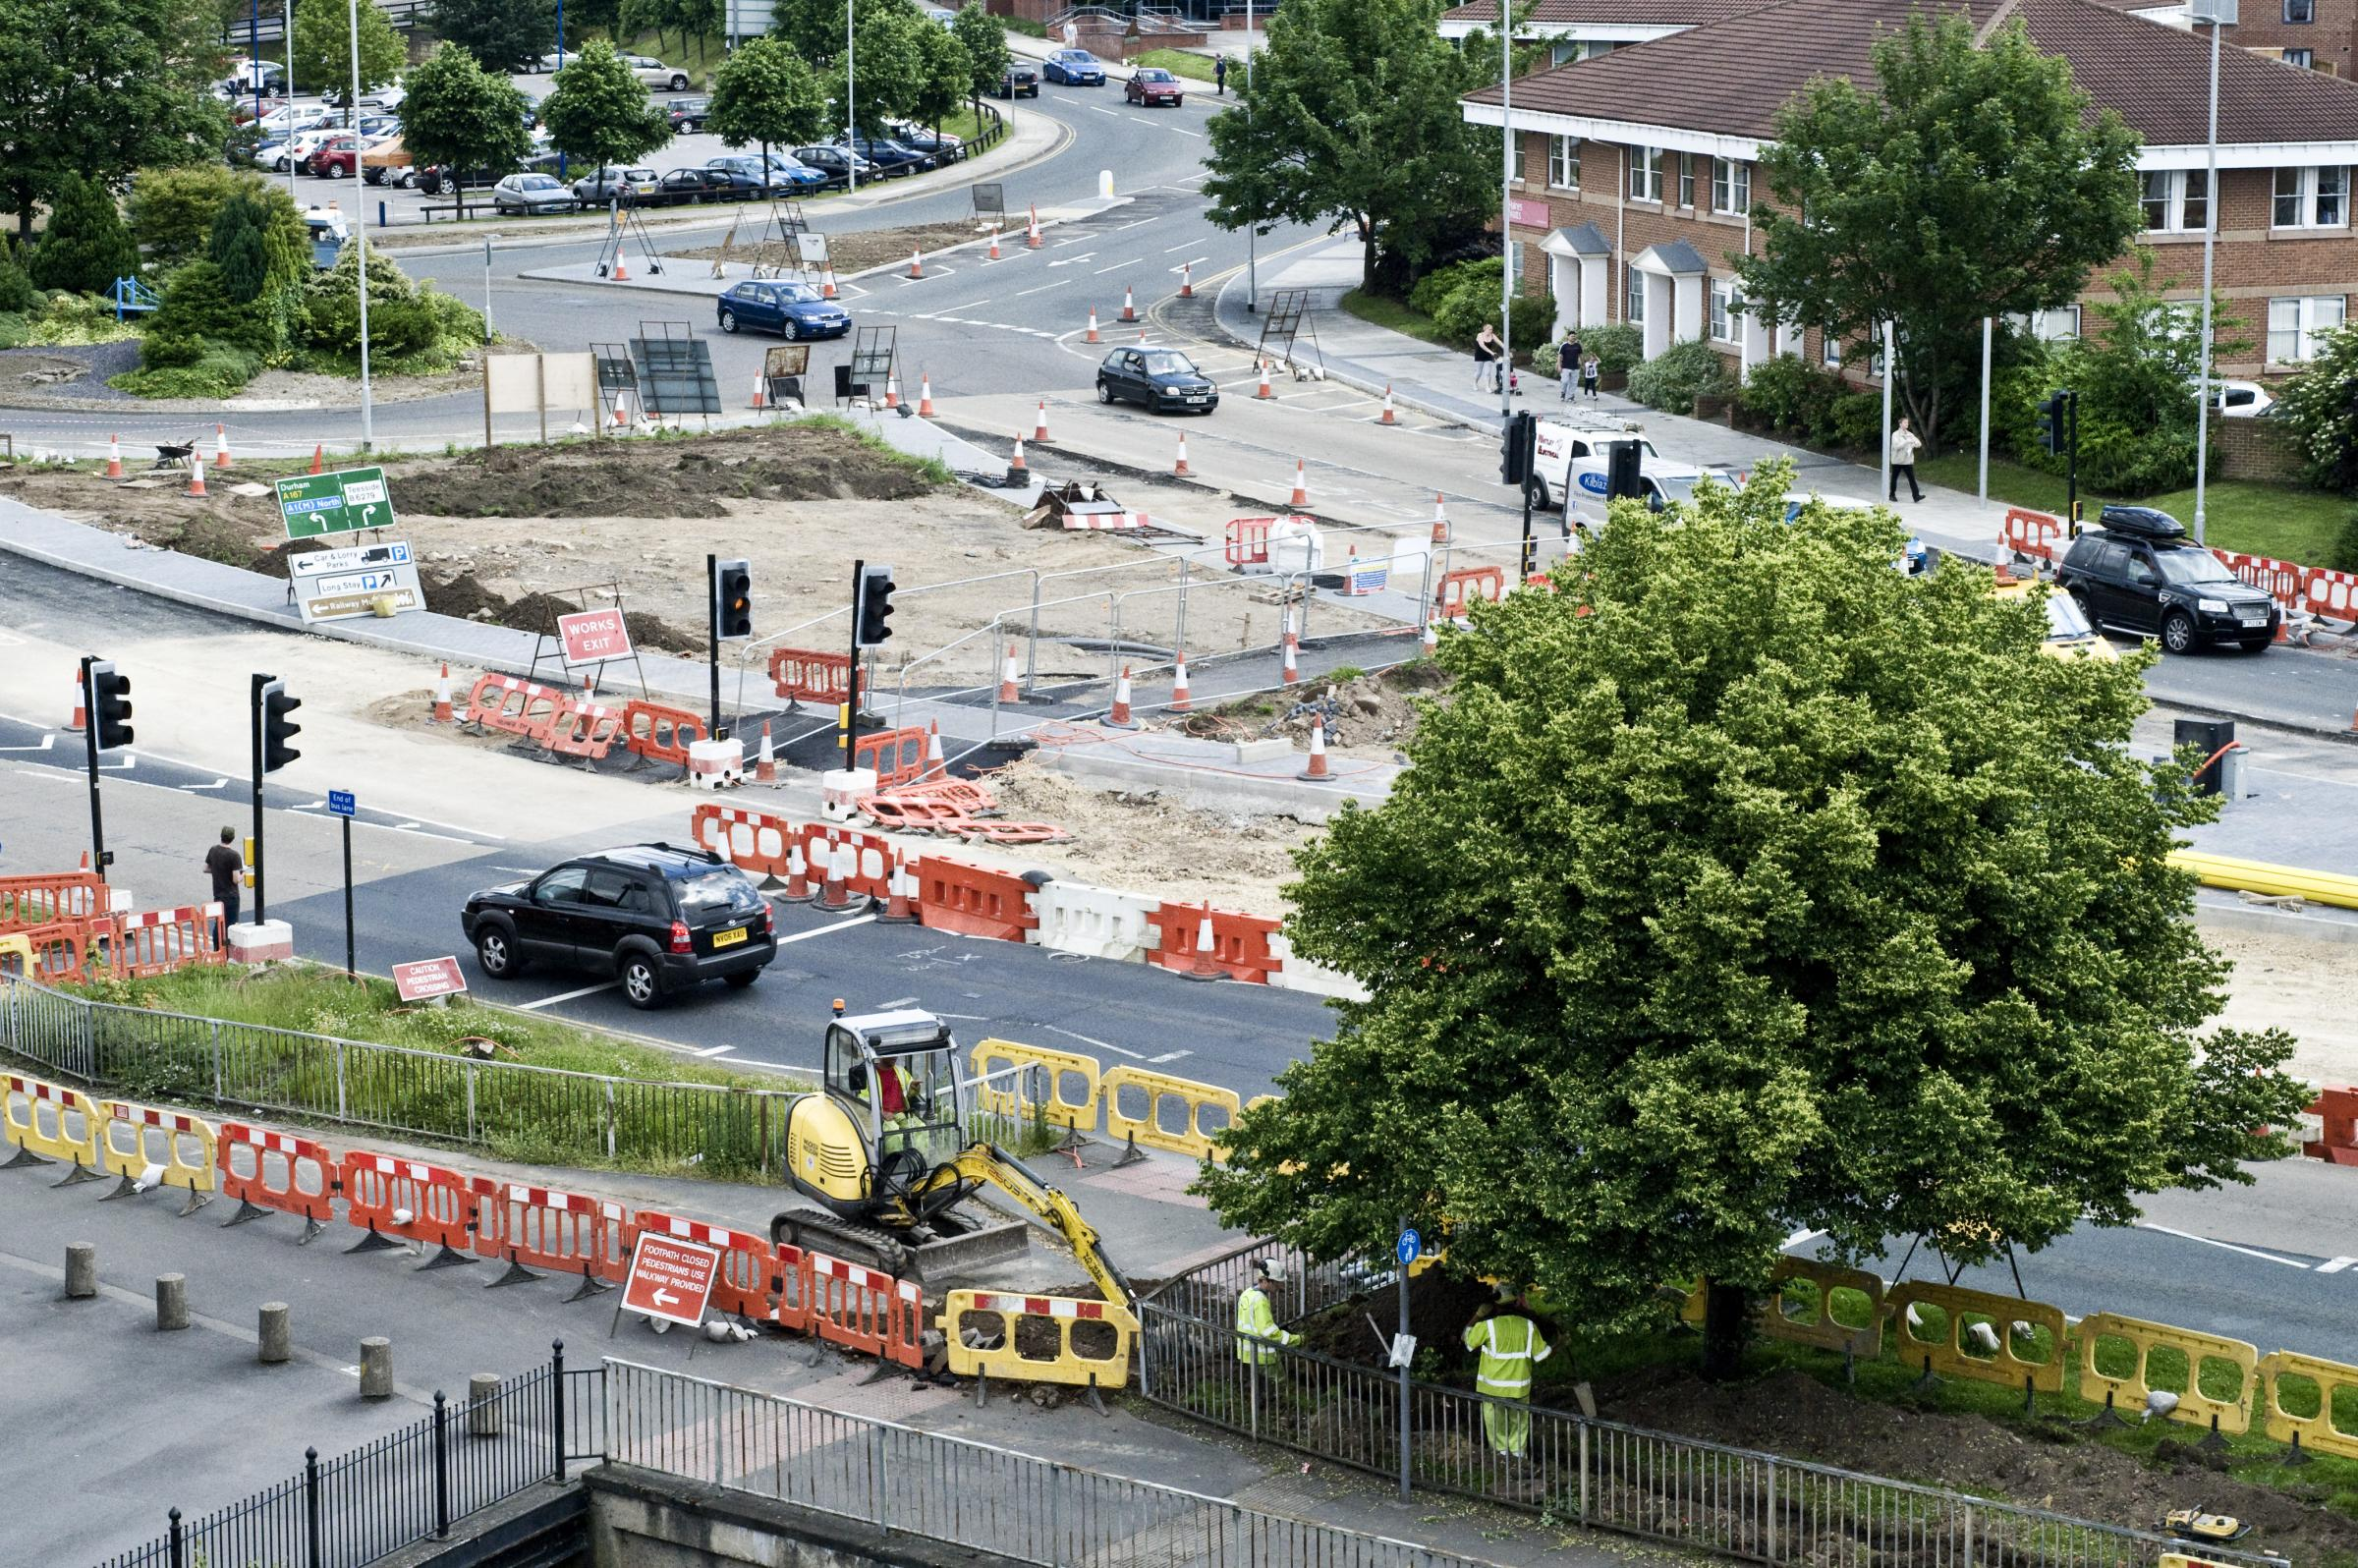 CLOSURES: Roadworks on St Cuthbert's Way, in Darlington